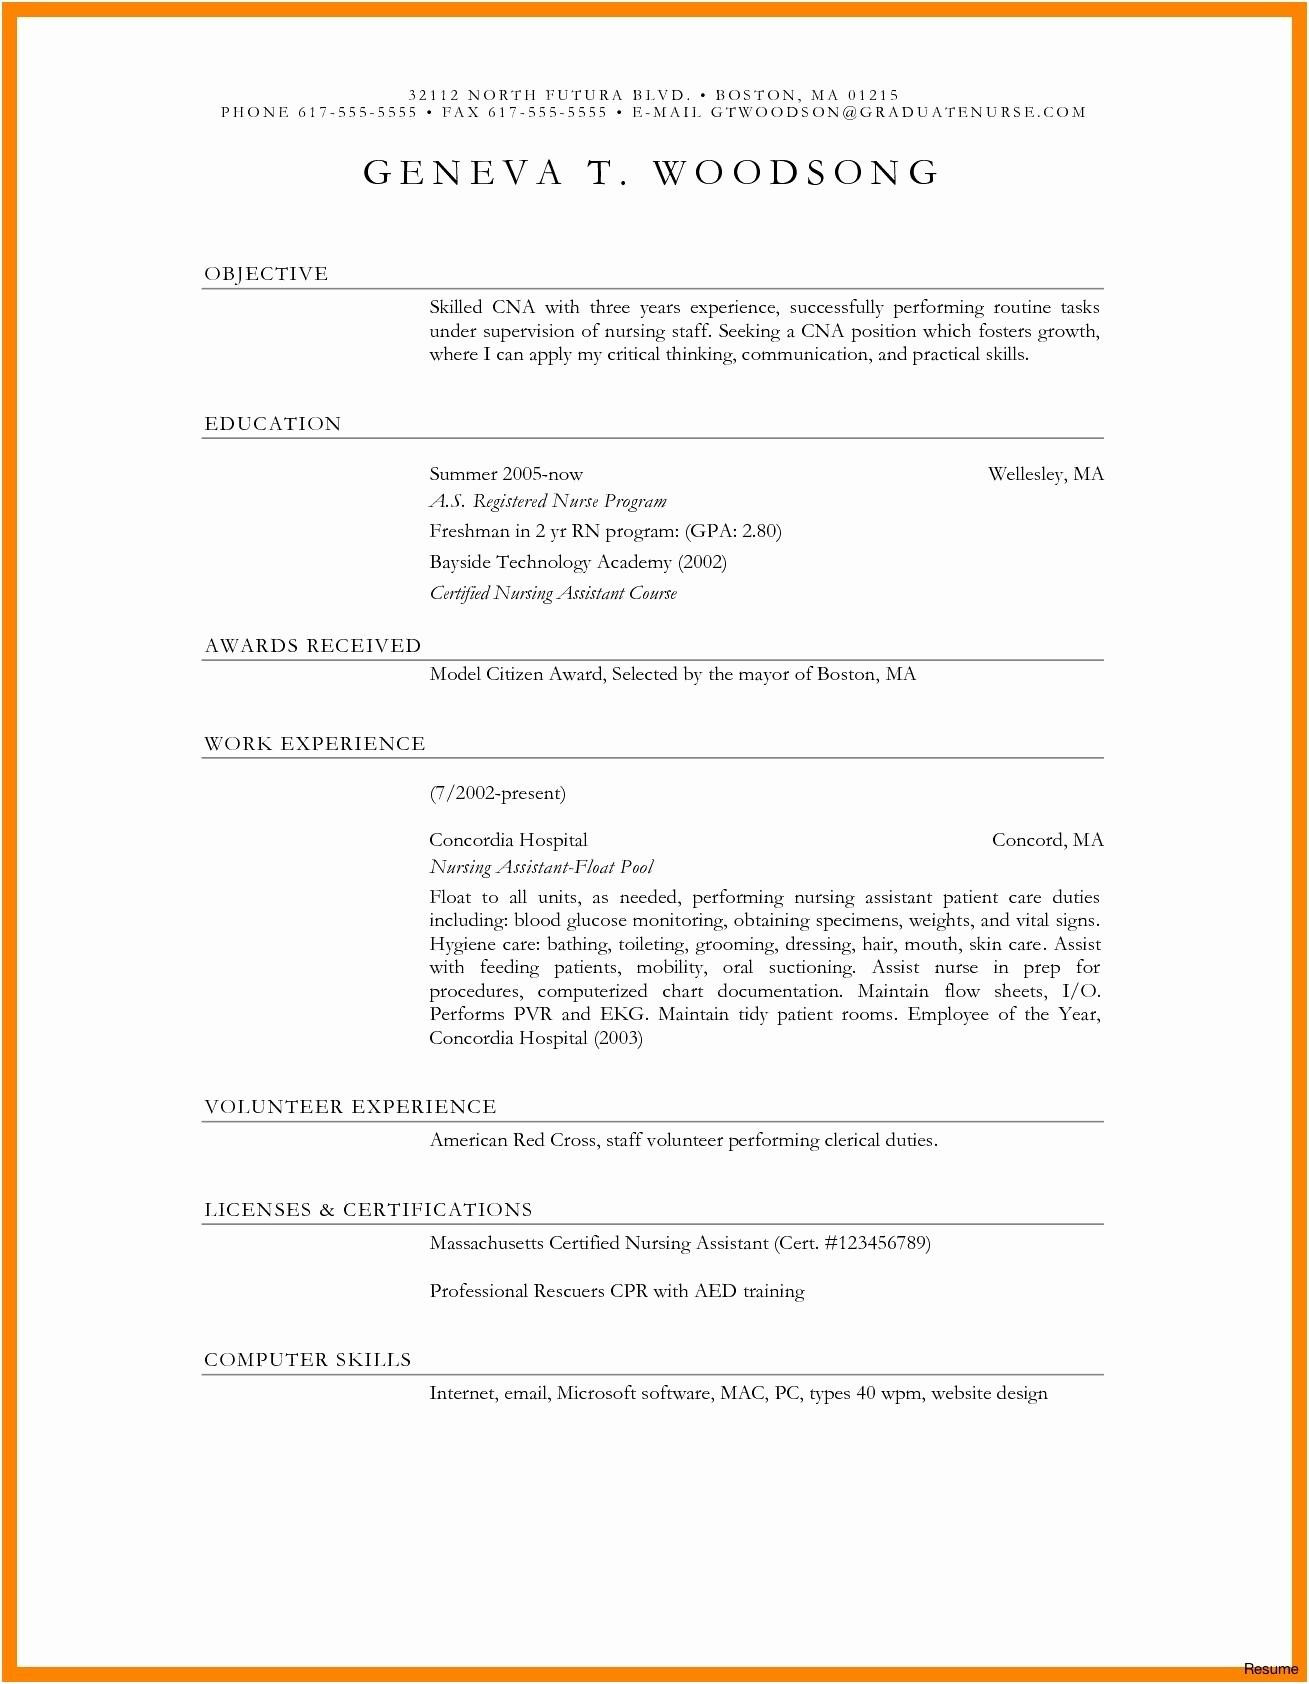 Legal assistant Resume - Teaching assistant Resume Legal assistant Resume Samples Luxury Law